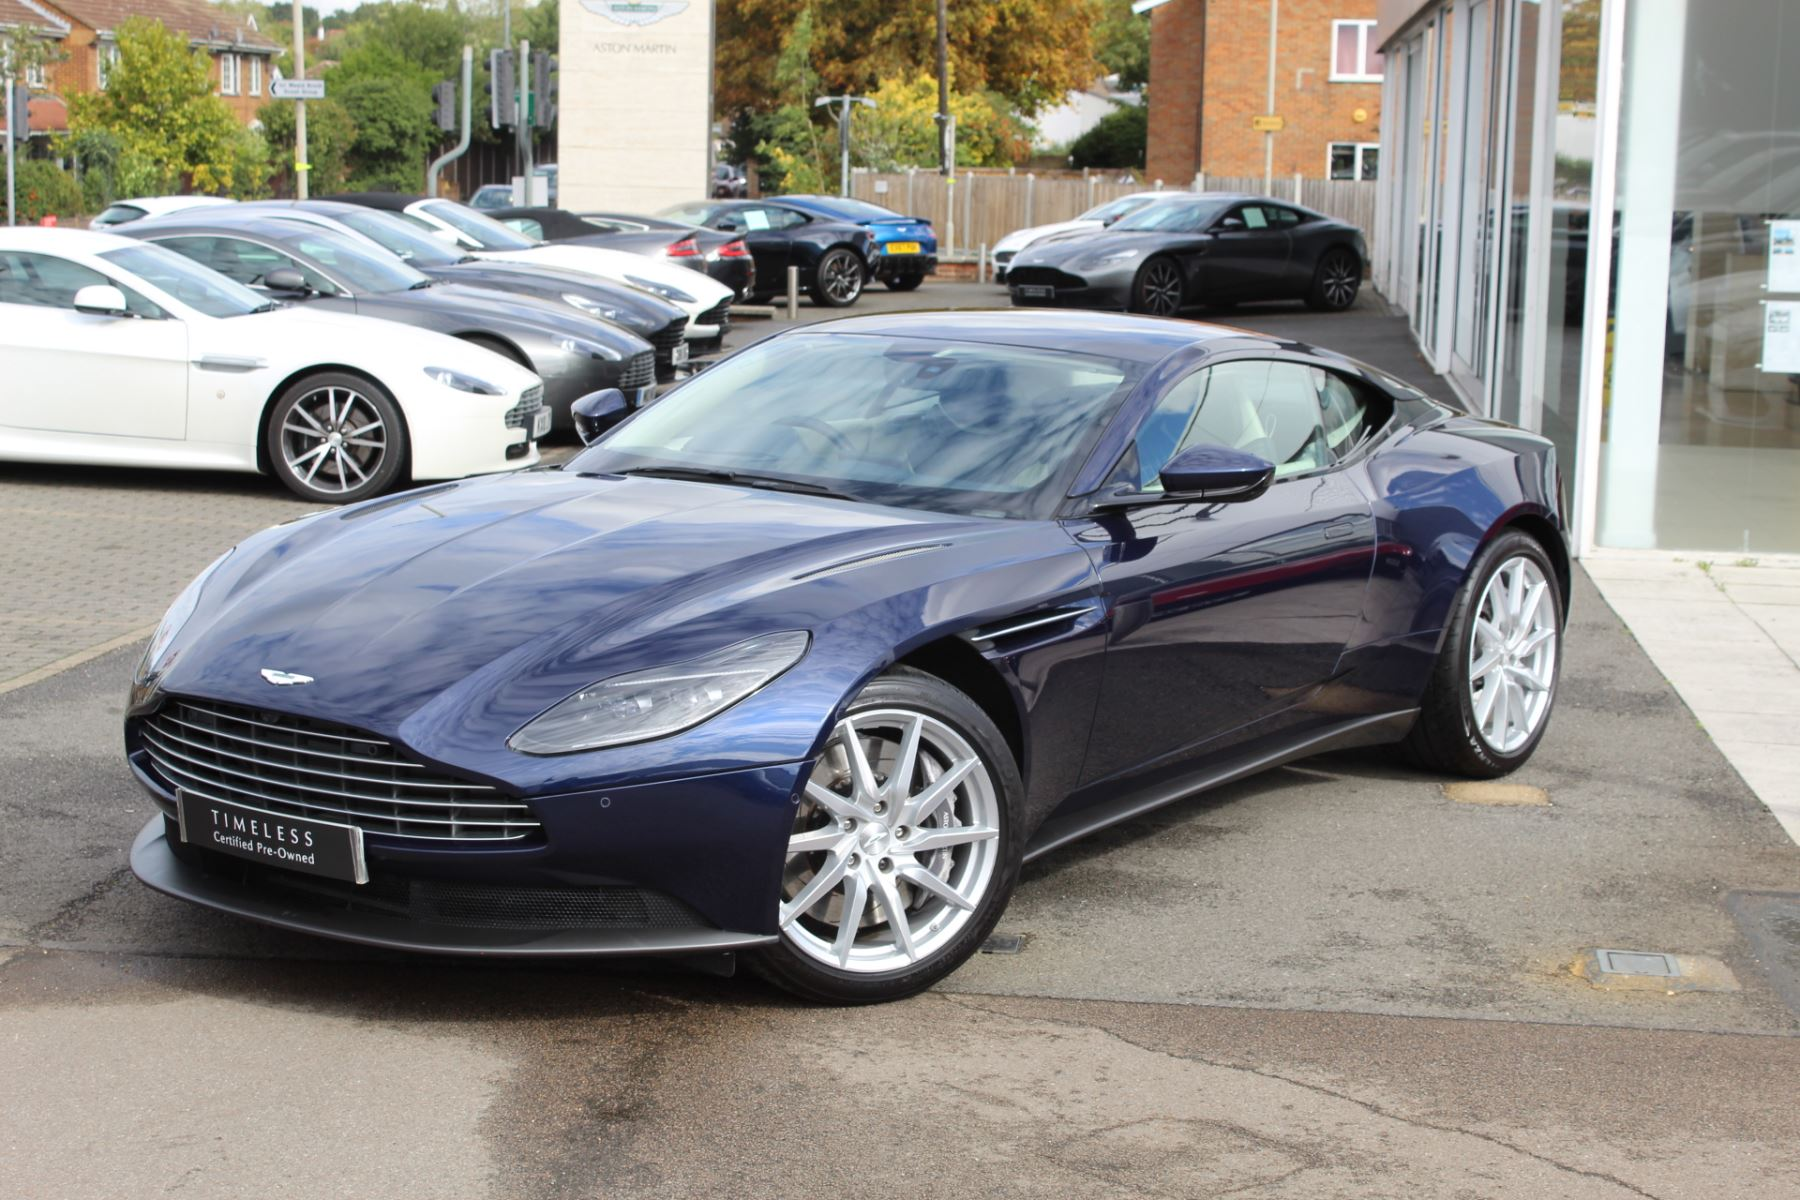 Aston Martin DB11 V8 2dr Touchtronic image 5